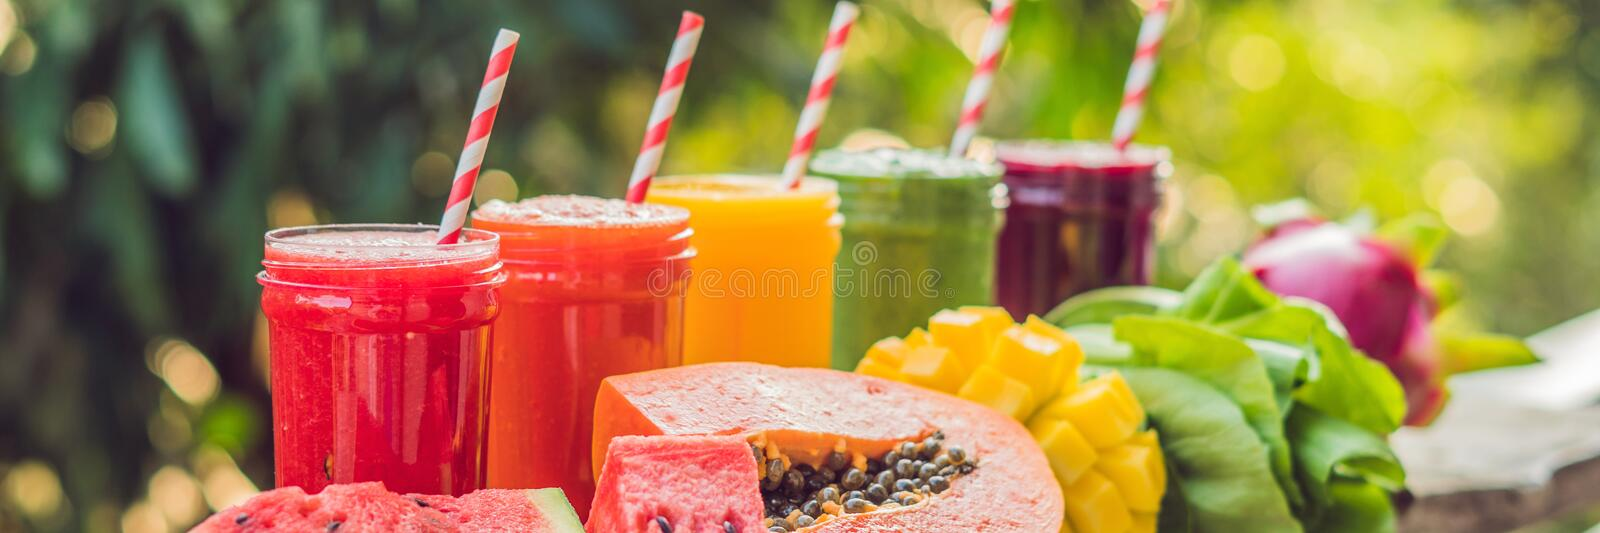 Rainbow from smoothies. Watermelon, papaya, mango, spinach and dragon fruit. Smoothies, juices, beverages, drinks royalty free stock image